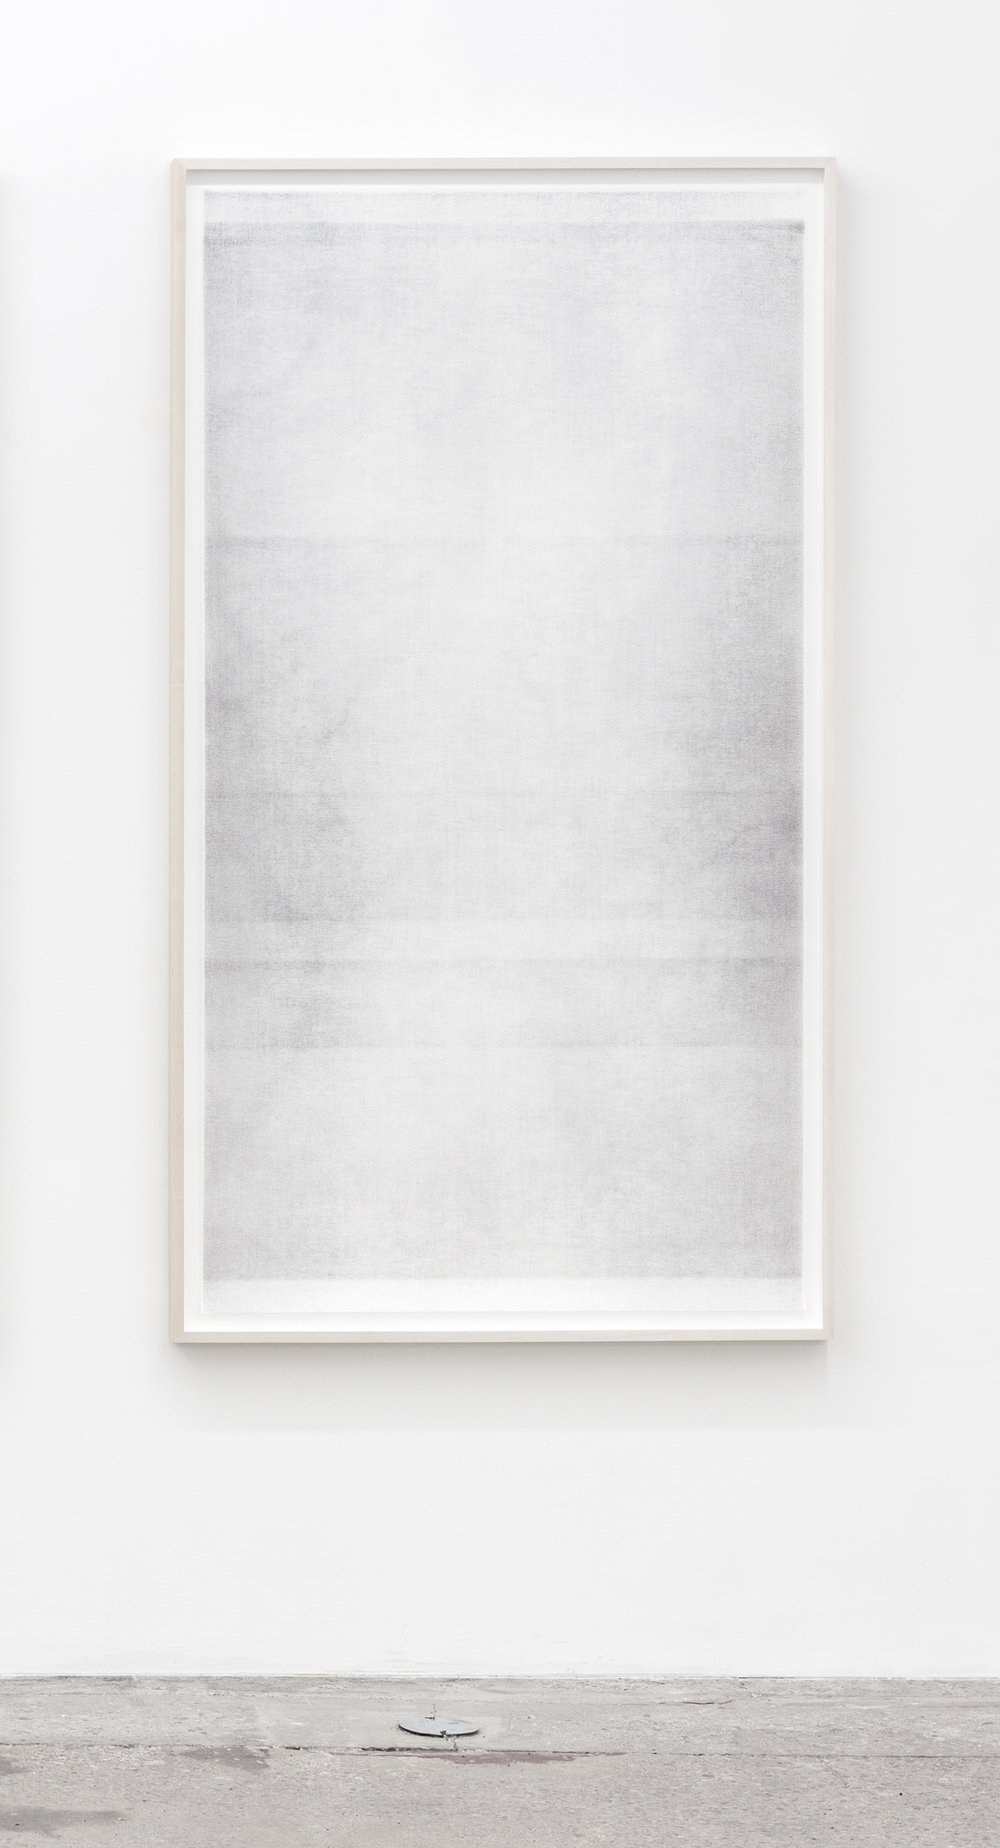 Untitled (when it settles #5, from the series A Certain Silence) , 2017, Oil based paint, graphite and charcoal on tarlatan, layered. 59 x 35 inches